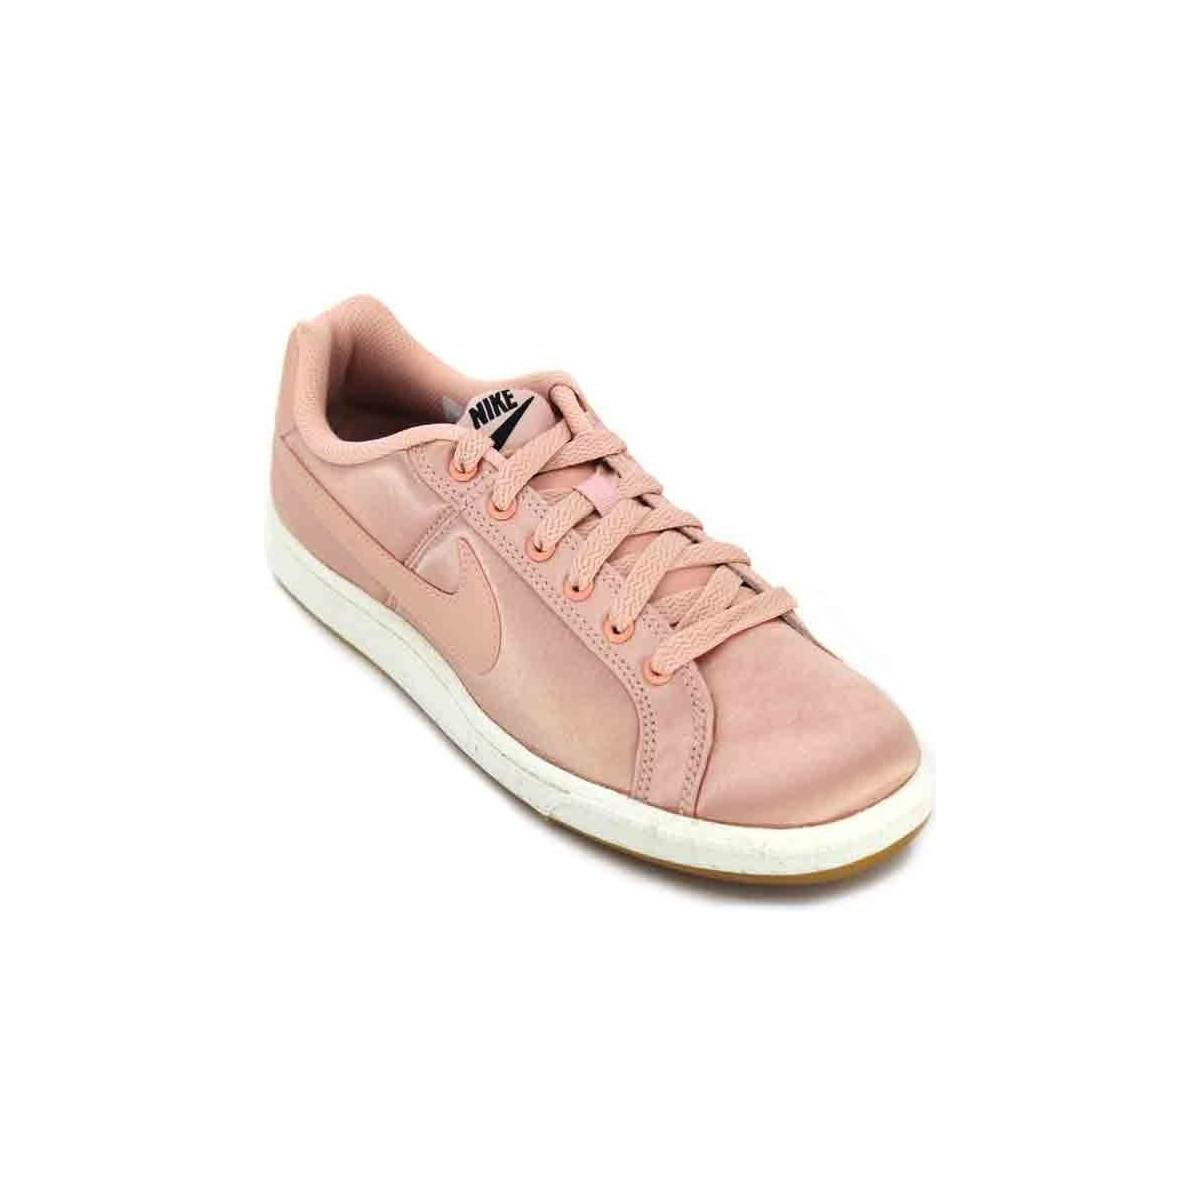 7b51f34f0b5 Nike. Wmns Court Royale Se Aa2170 Women s Trainers Women s Shoes ...